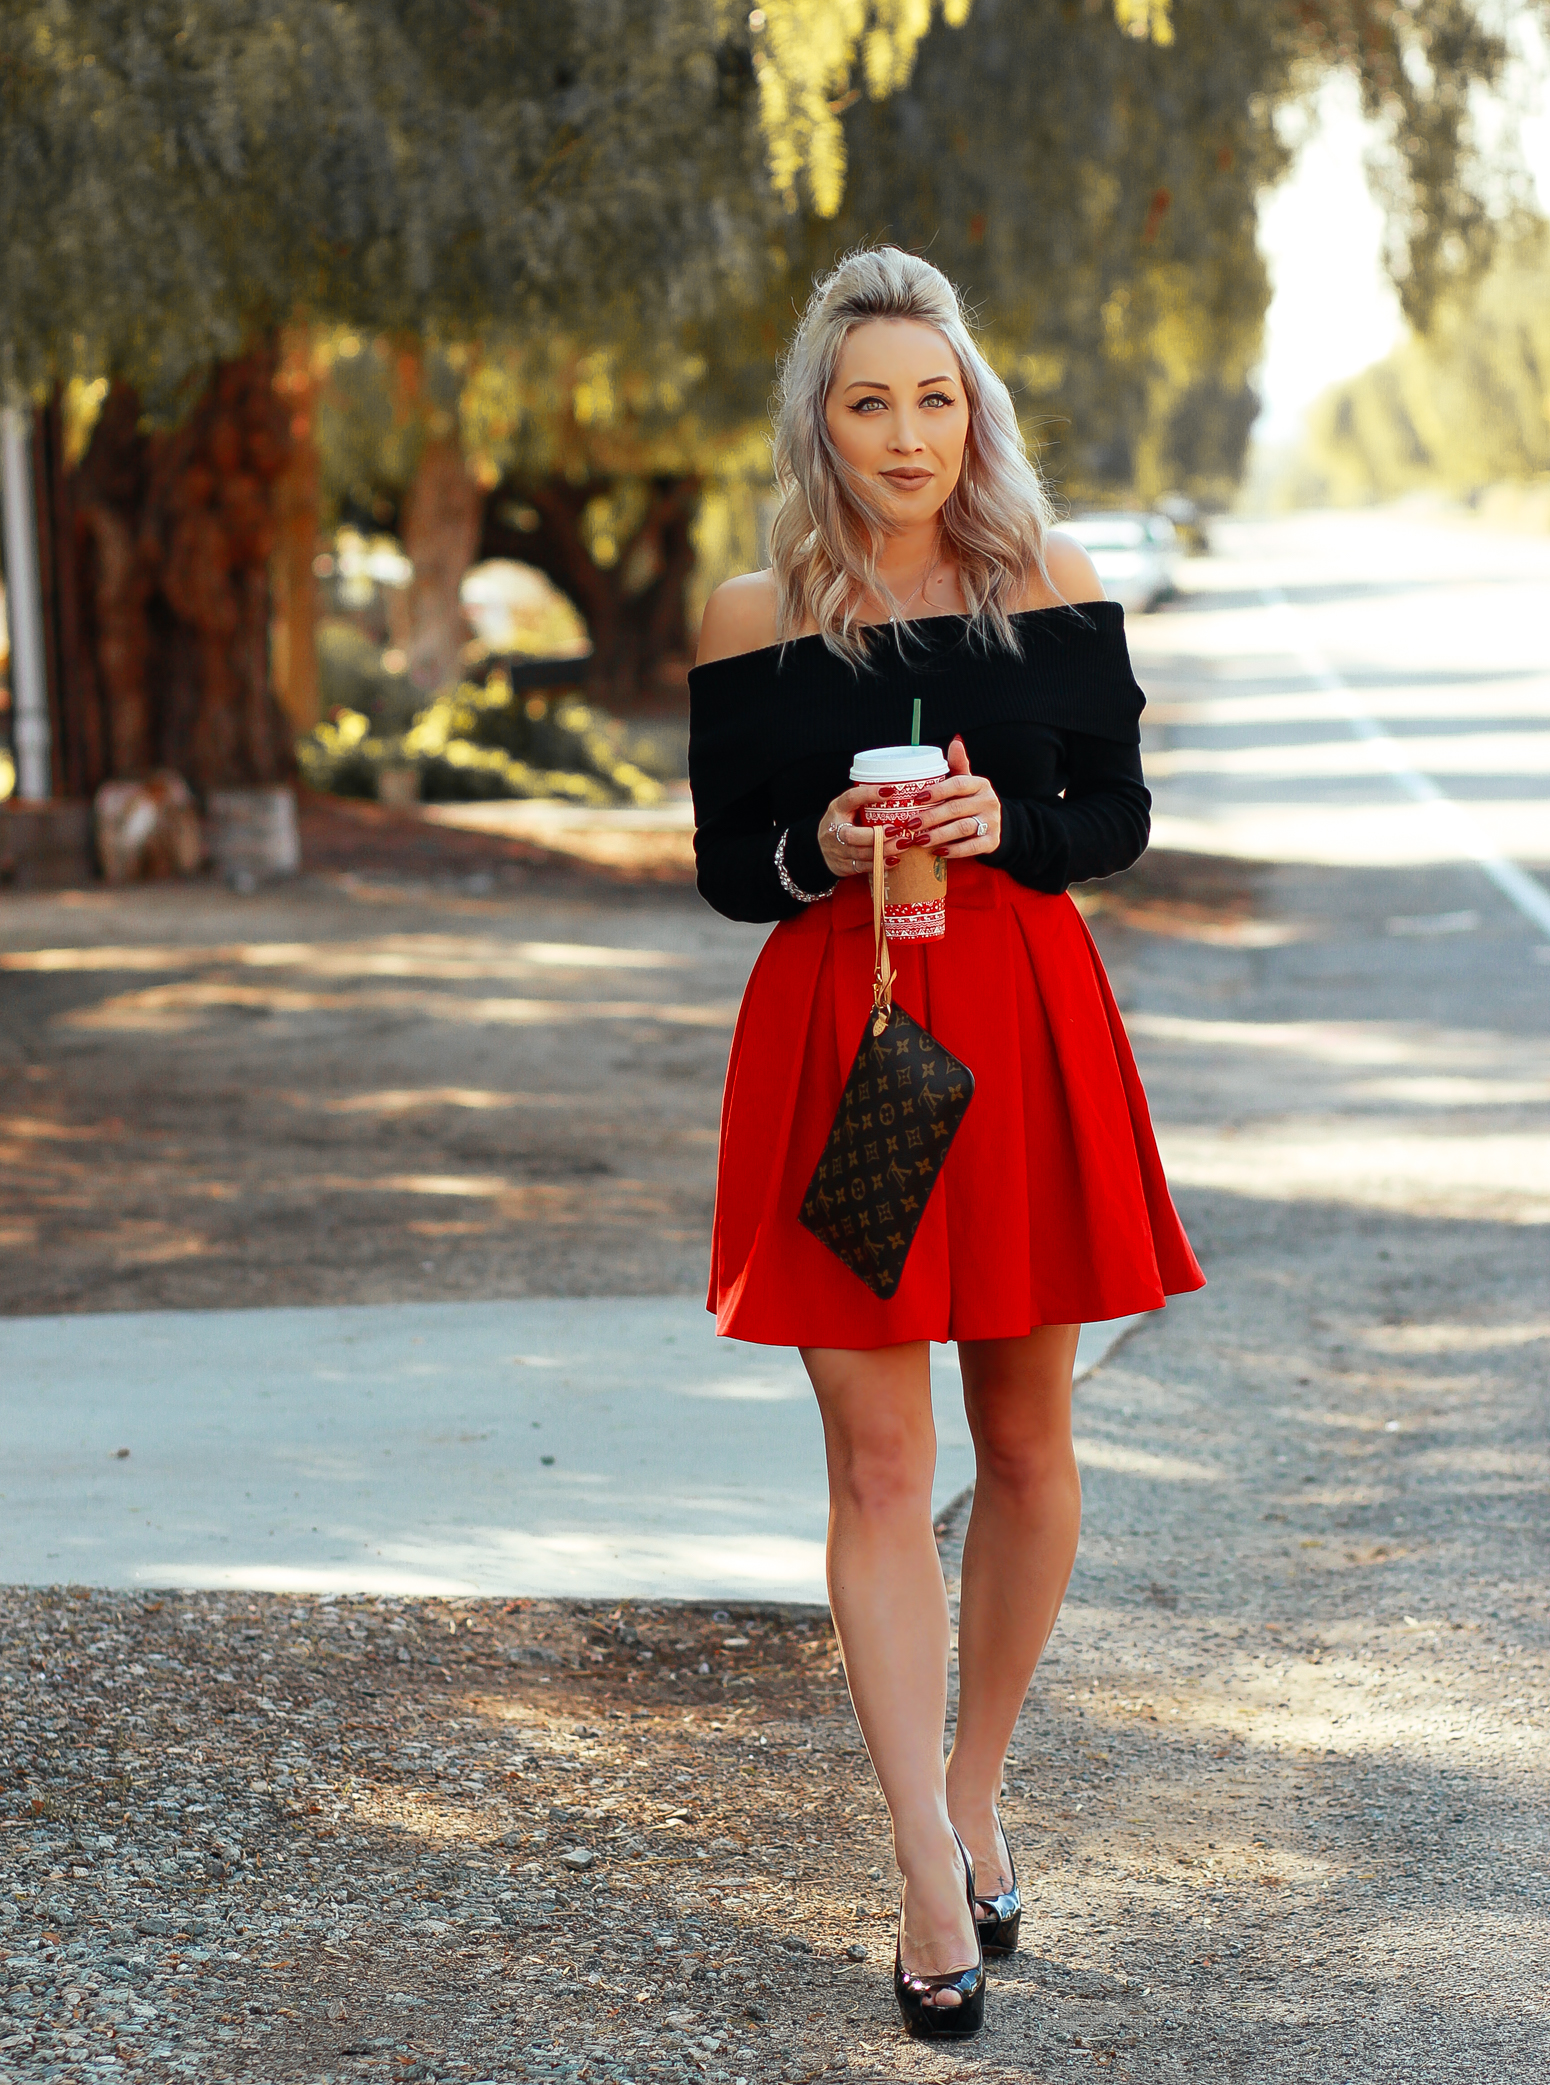 Blondie in the City | Red Holiday Skirt, Holiday Outfit Inspo